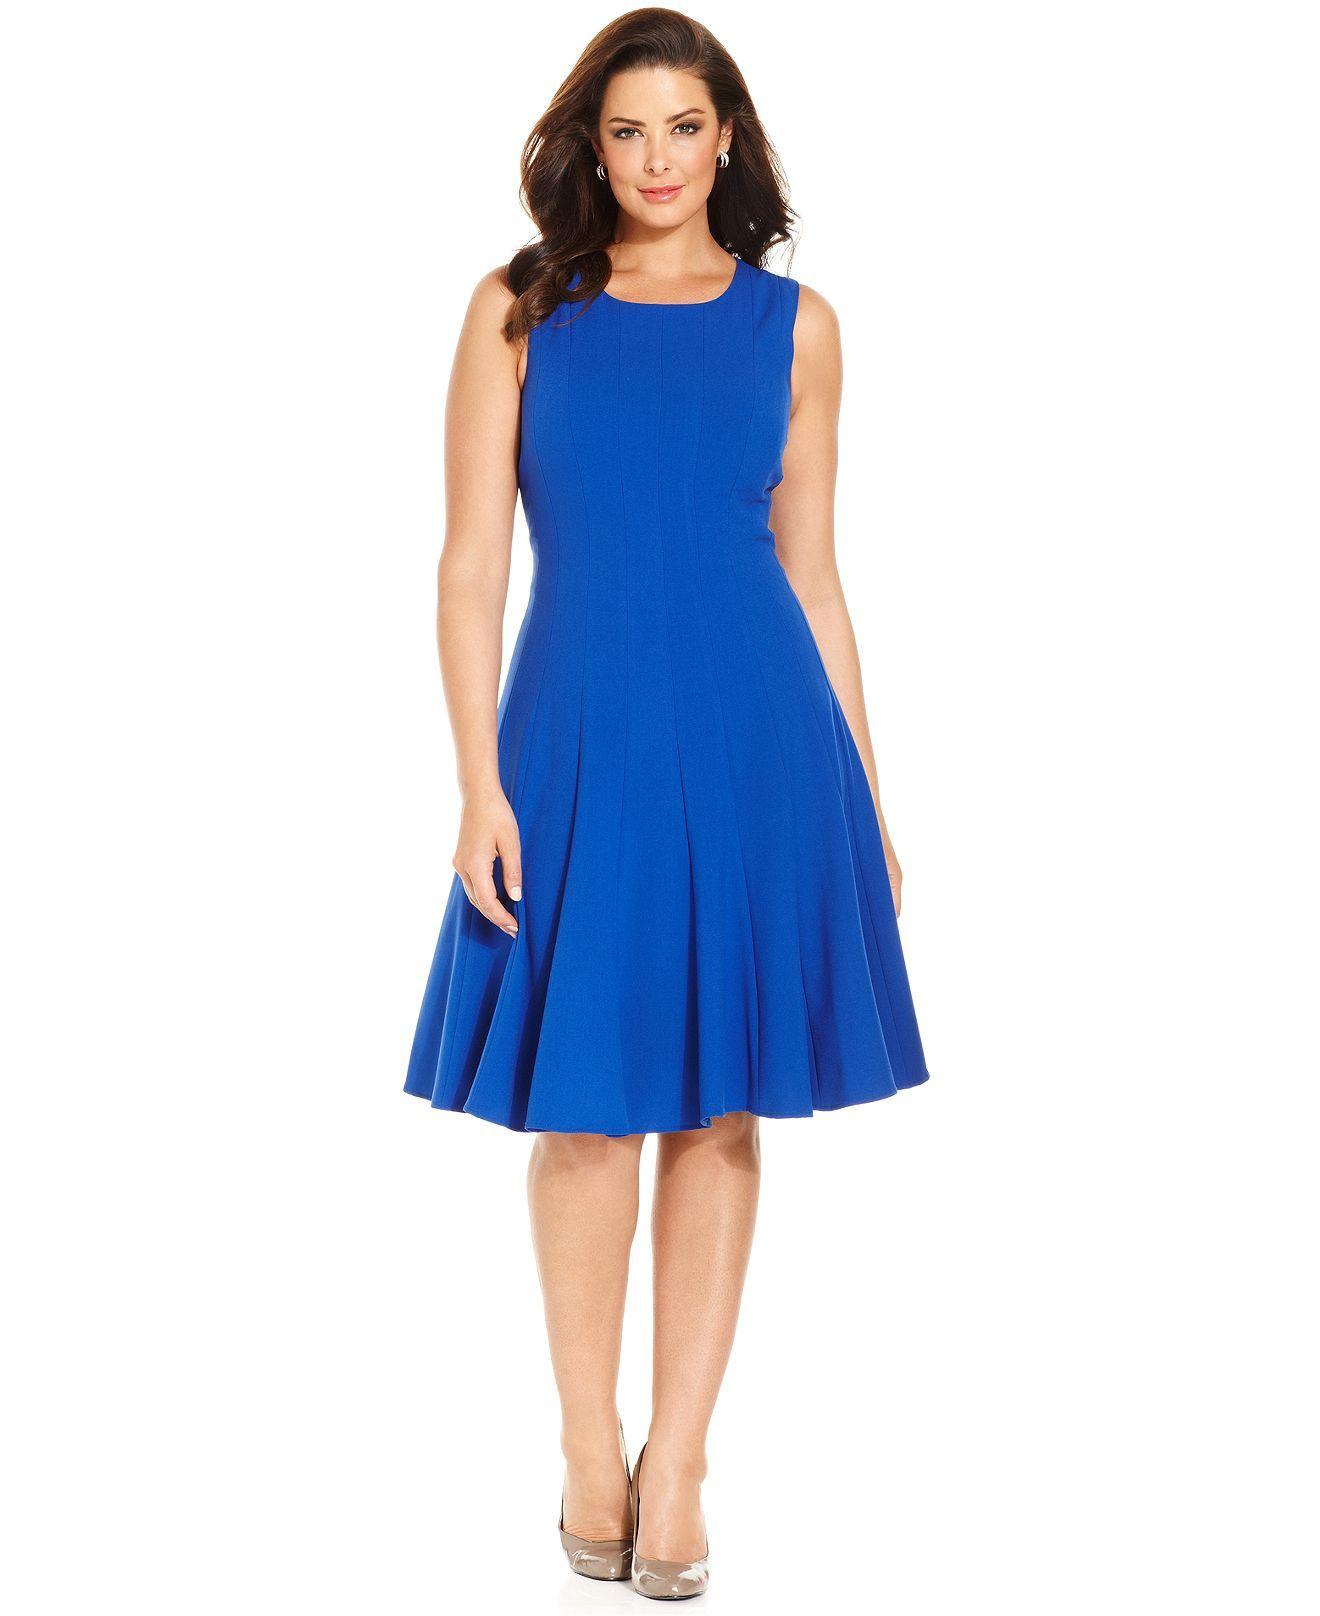 Pleated A-Line Party Dress